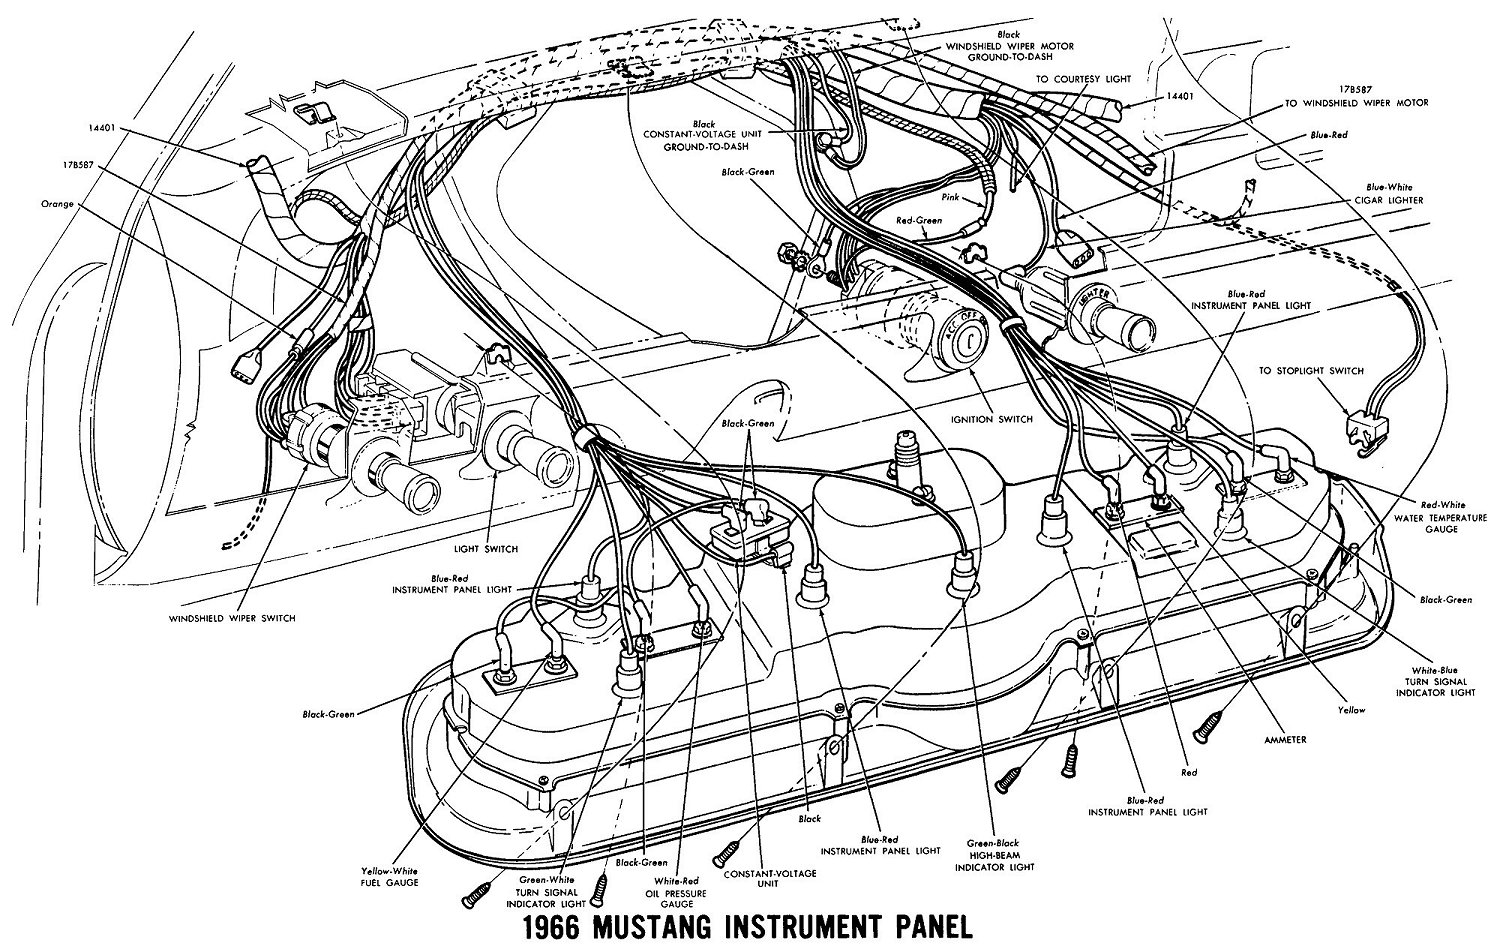 66instr 1966 mustang wiring diagrams average joe restoration 66 mustang voltage regulator wiring diagram at bakdesigns.co